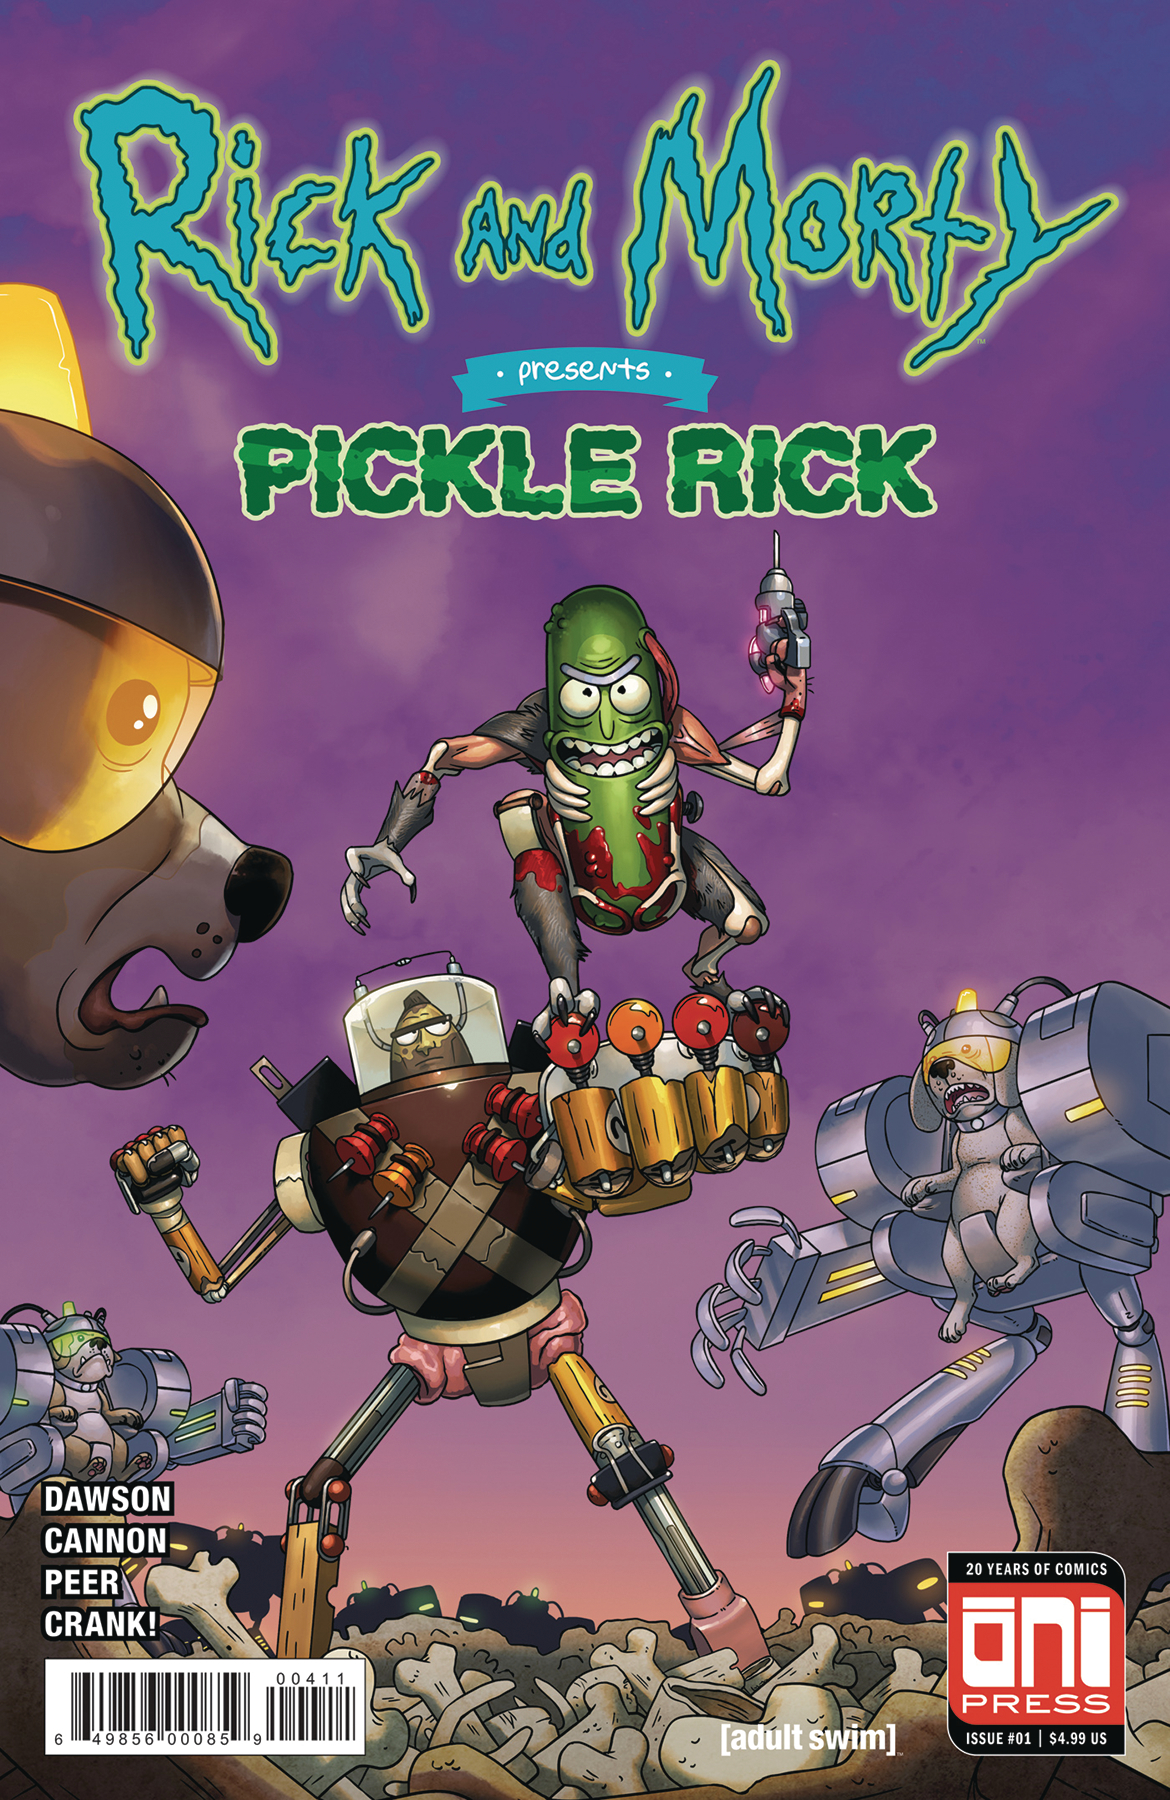 RICK & MORTY PRESENTS PICKLE RICK #1 CVR A